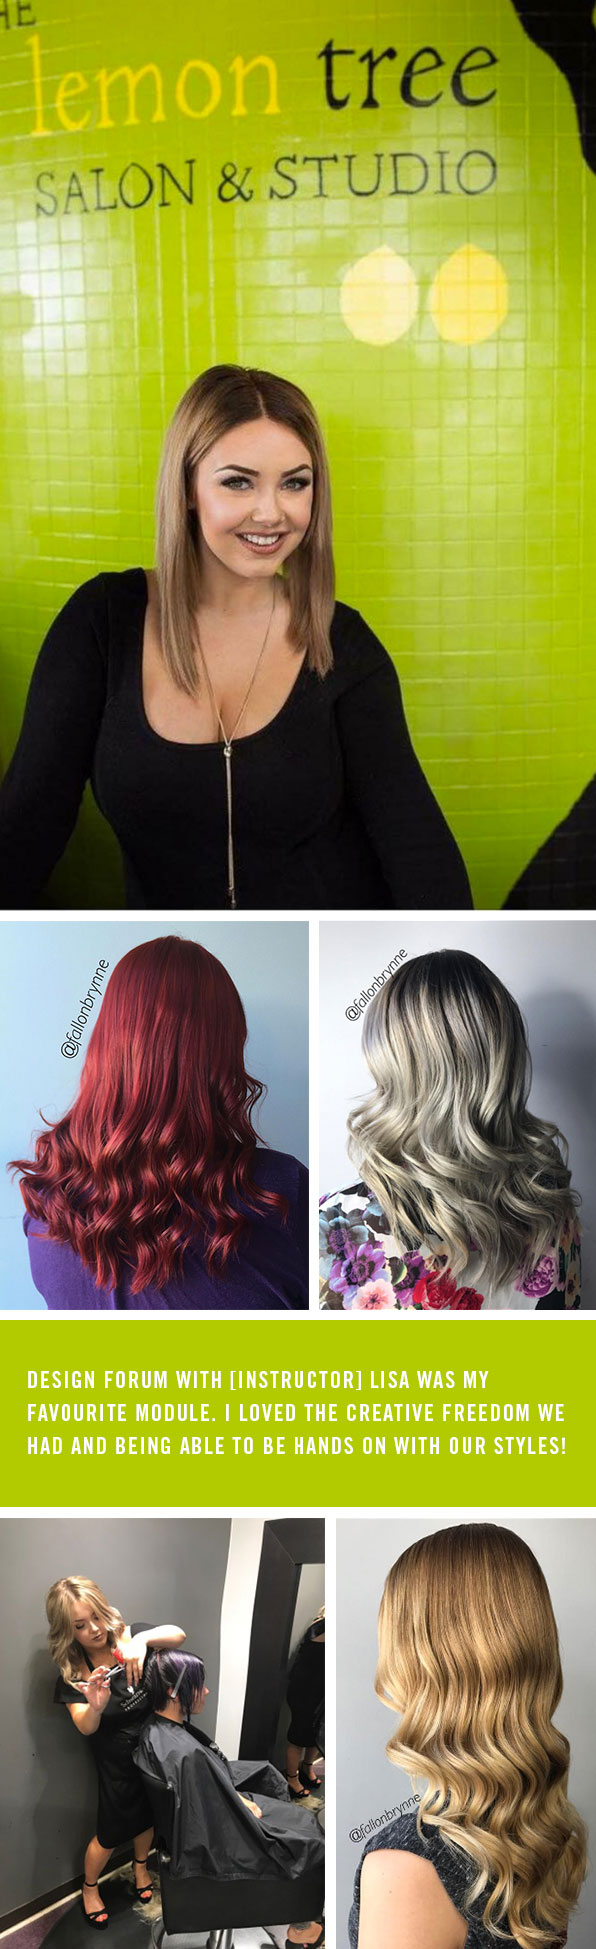 top-hair-school-graduate-fallon-brynne-nygaard-shear-talent